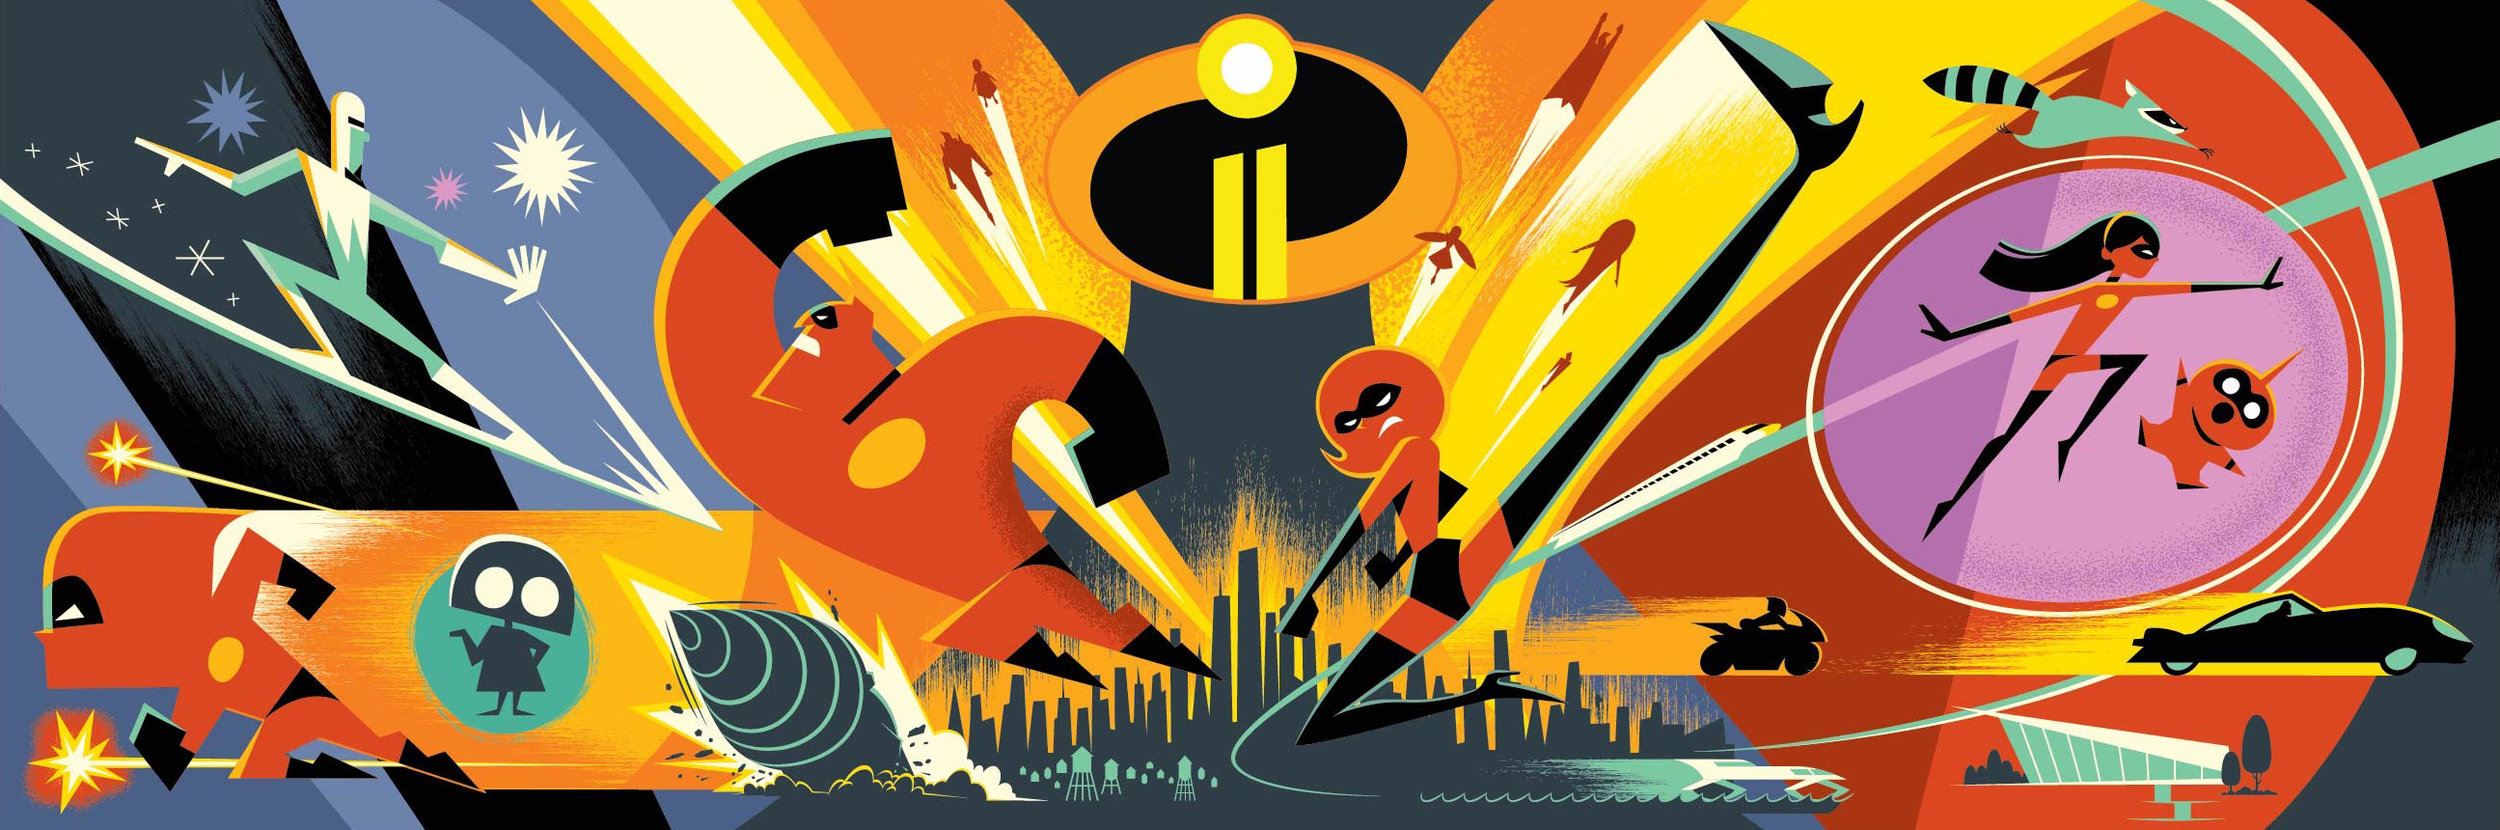 Some awesome concept art for Incredibles 2. This style of art was featured in the credits which was fun!